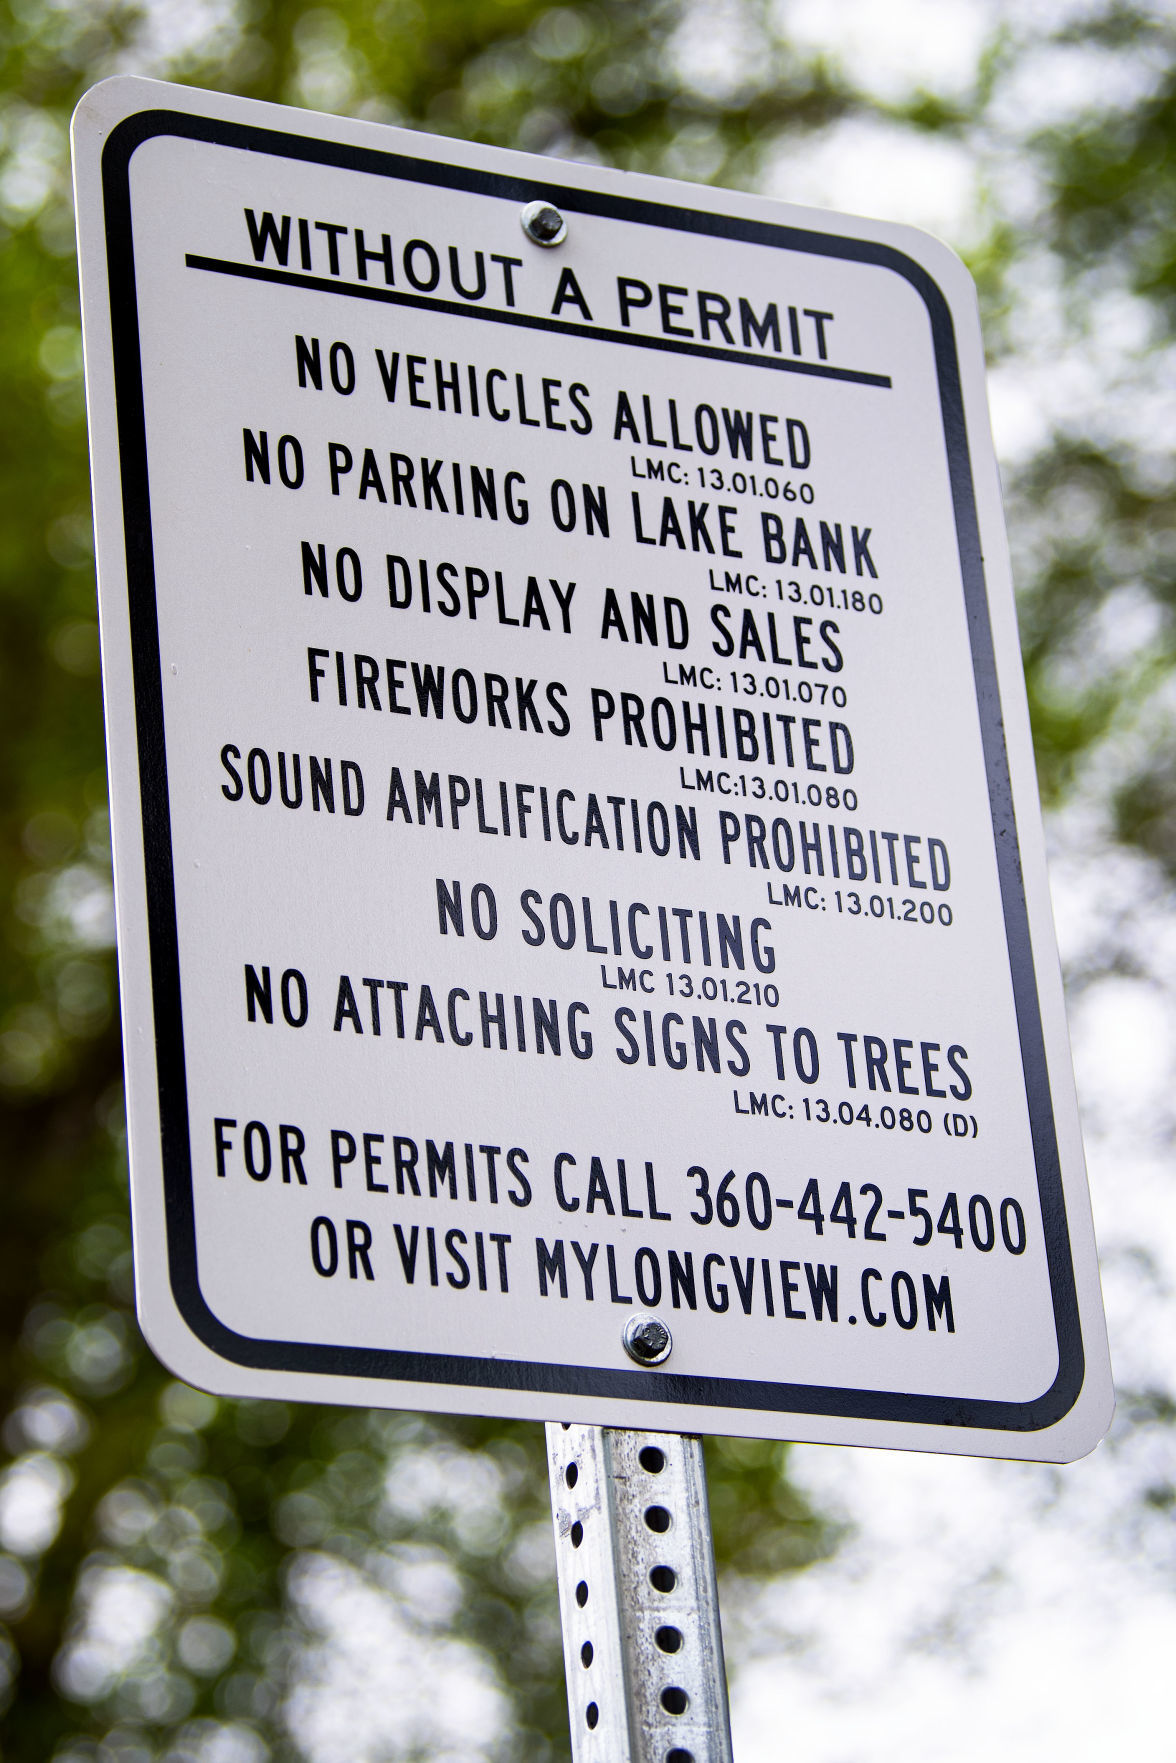 Without a permit sign